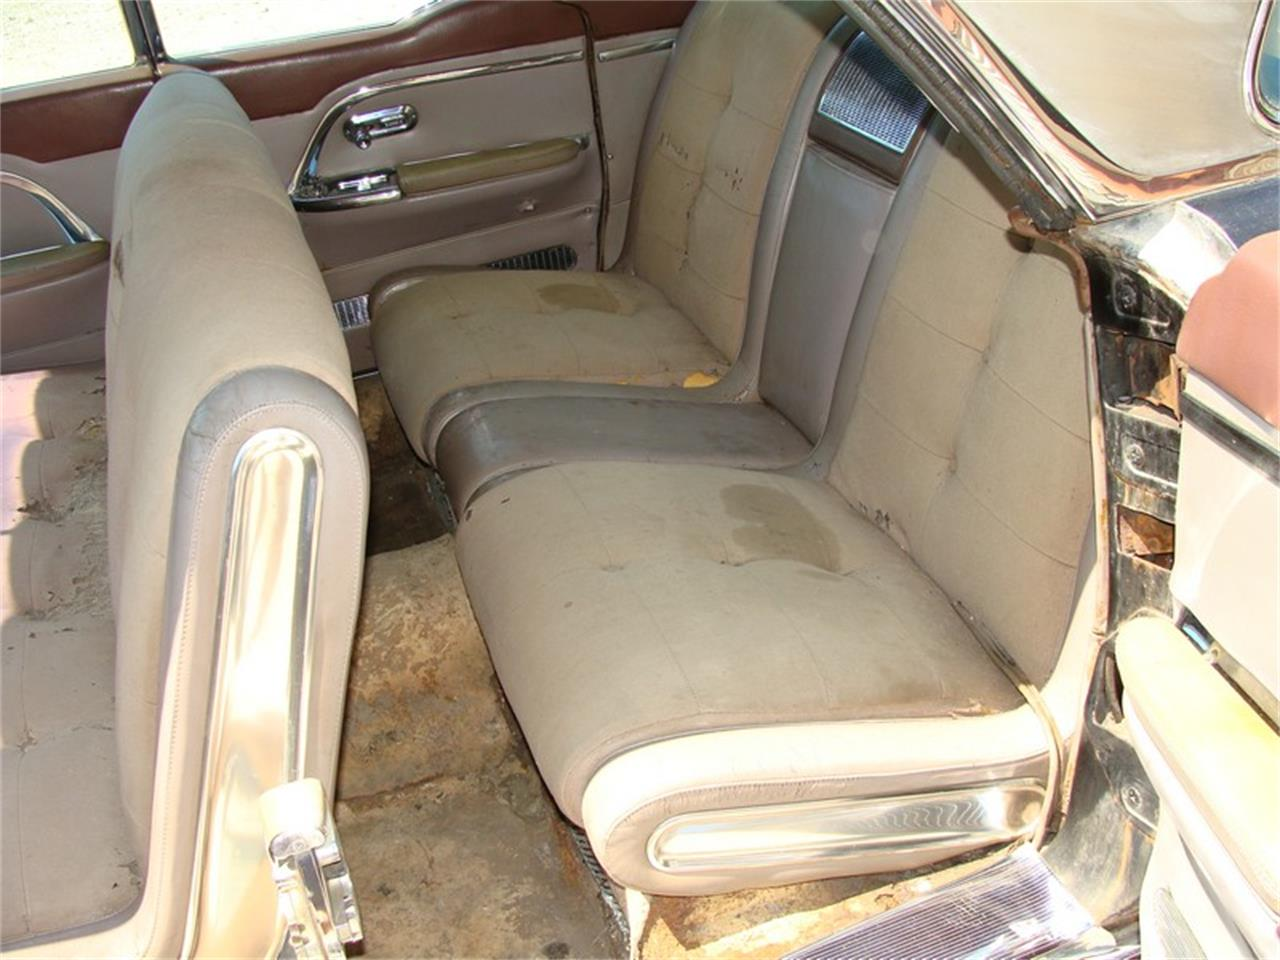 Large Picture of 1958 Eldorado Brougham located in DALLAS Texas - $30,000.00 Offered by Pete's Classic Cars - QELZ